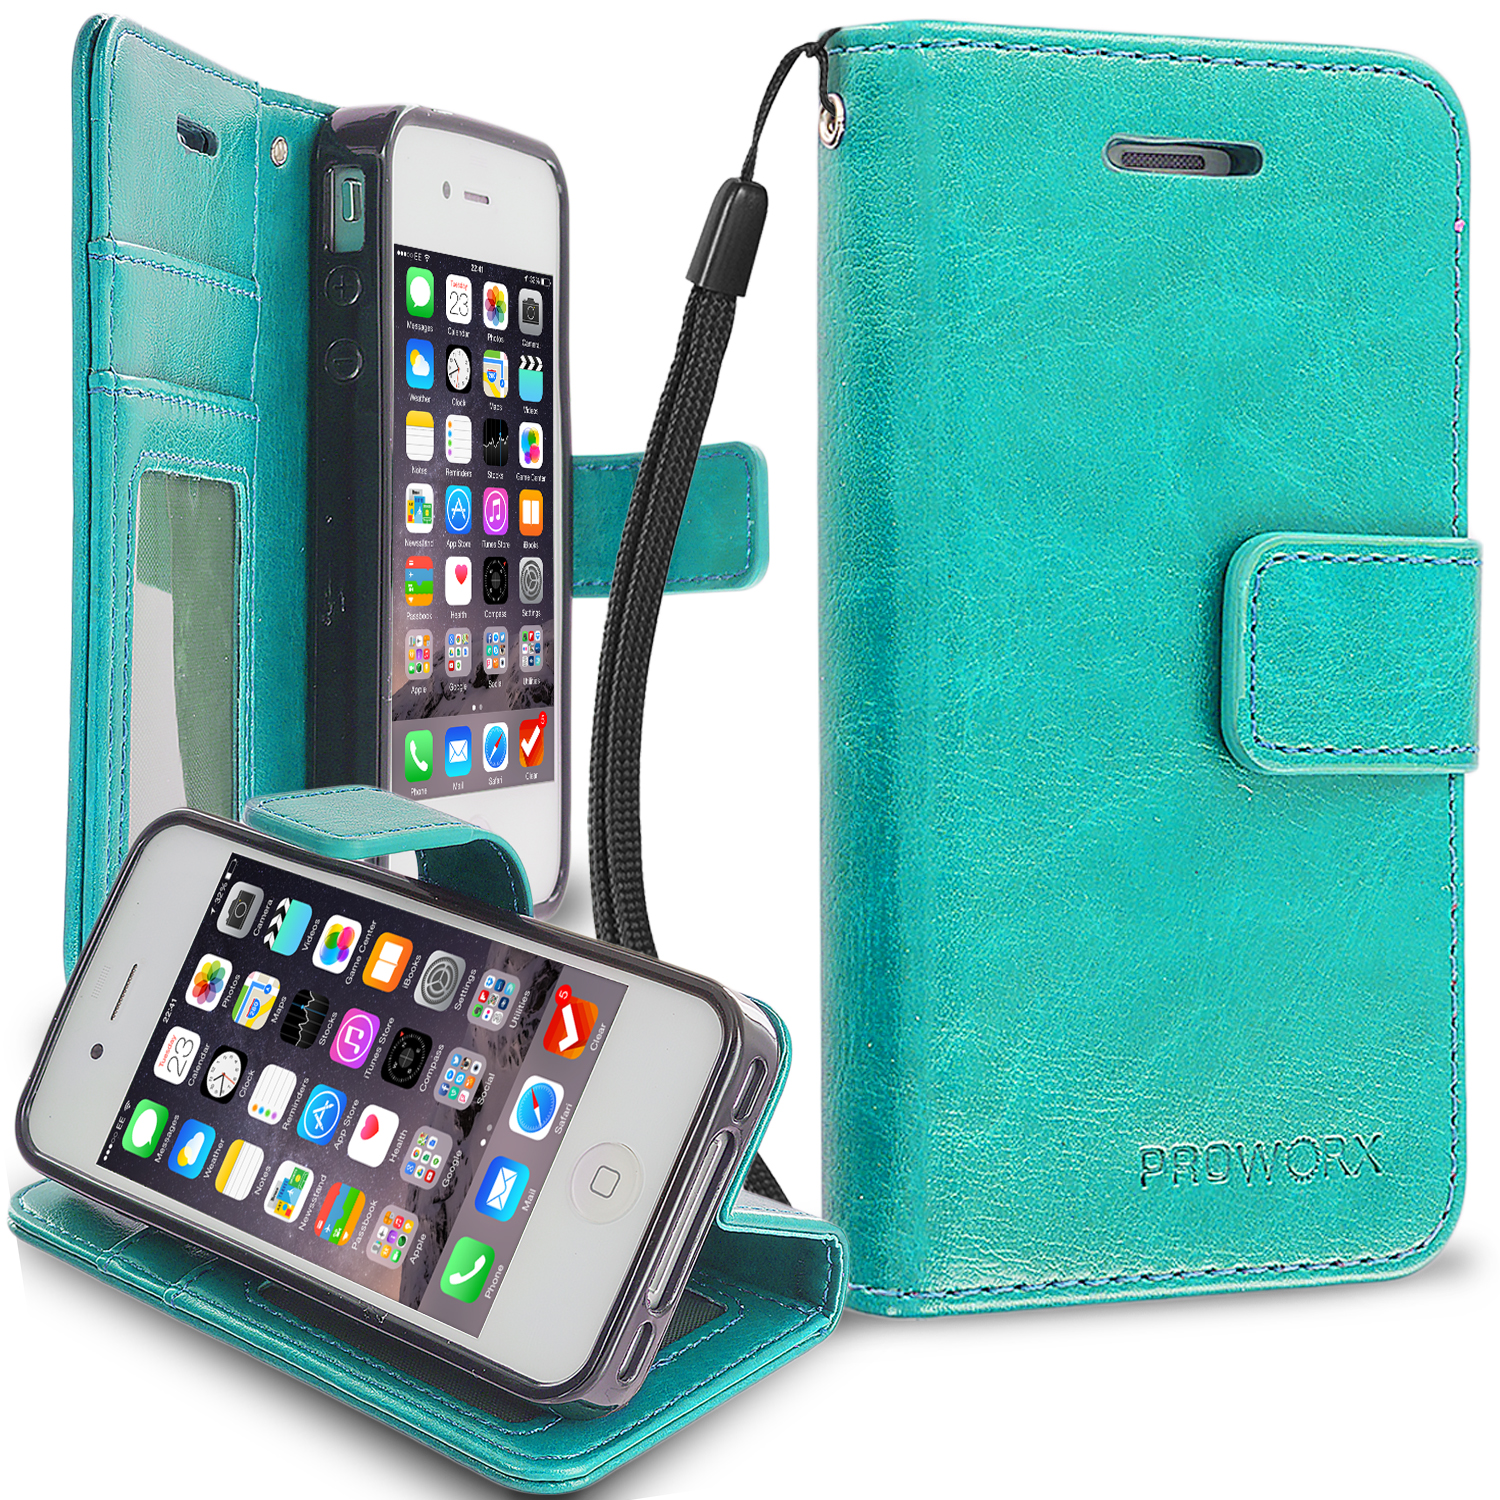 Apple iPhone 4 / 4S Mint Green ProWorx Wallet Case Luxury PU Leather Case Cover With Card Slots & Stand